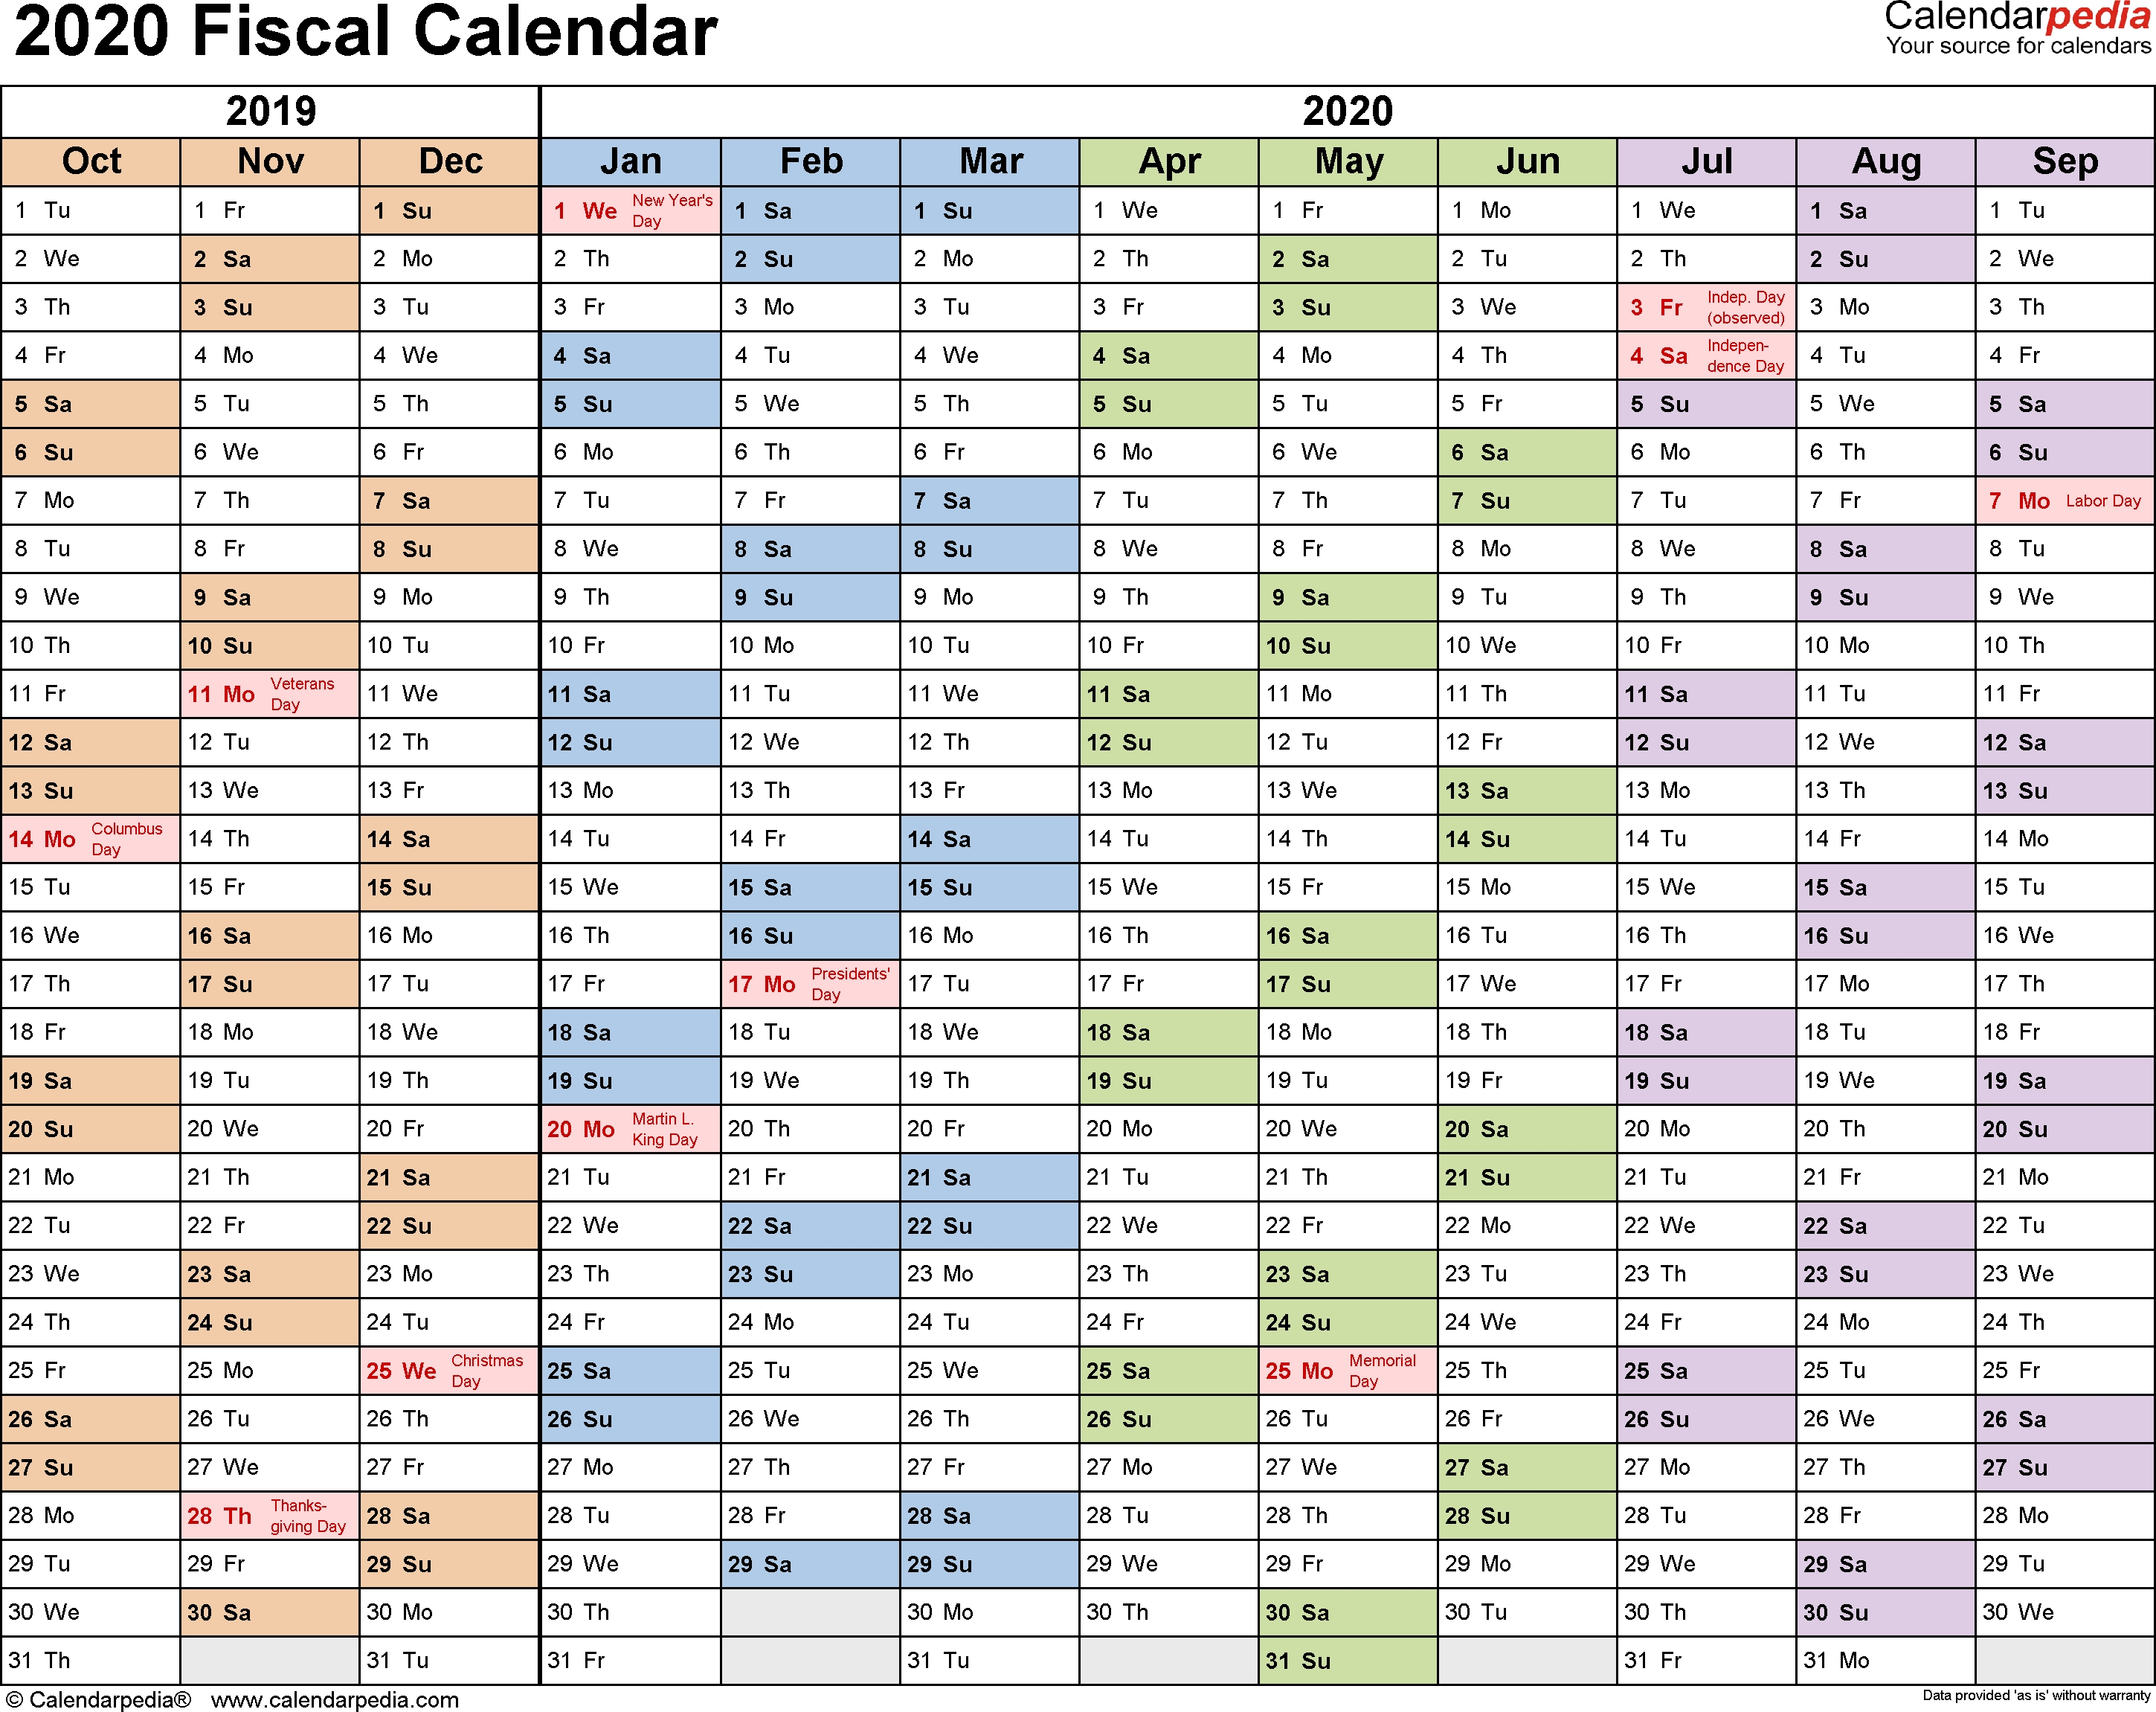 Fiscal Calendars 2020 - Free Printable Excel Templates intended for 2020 Fiscal Calendar To Print